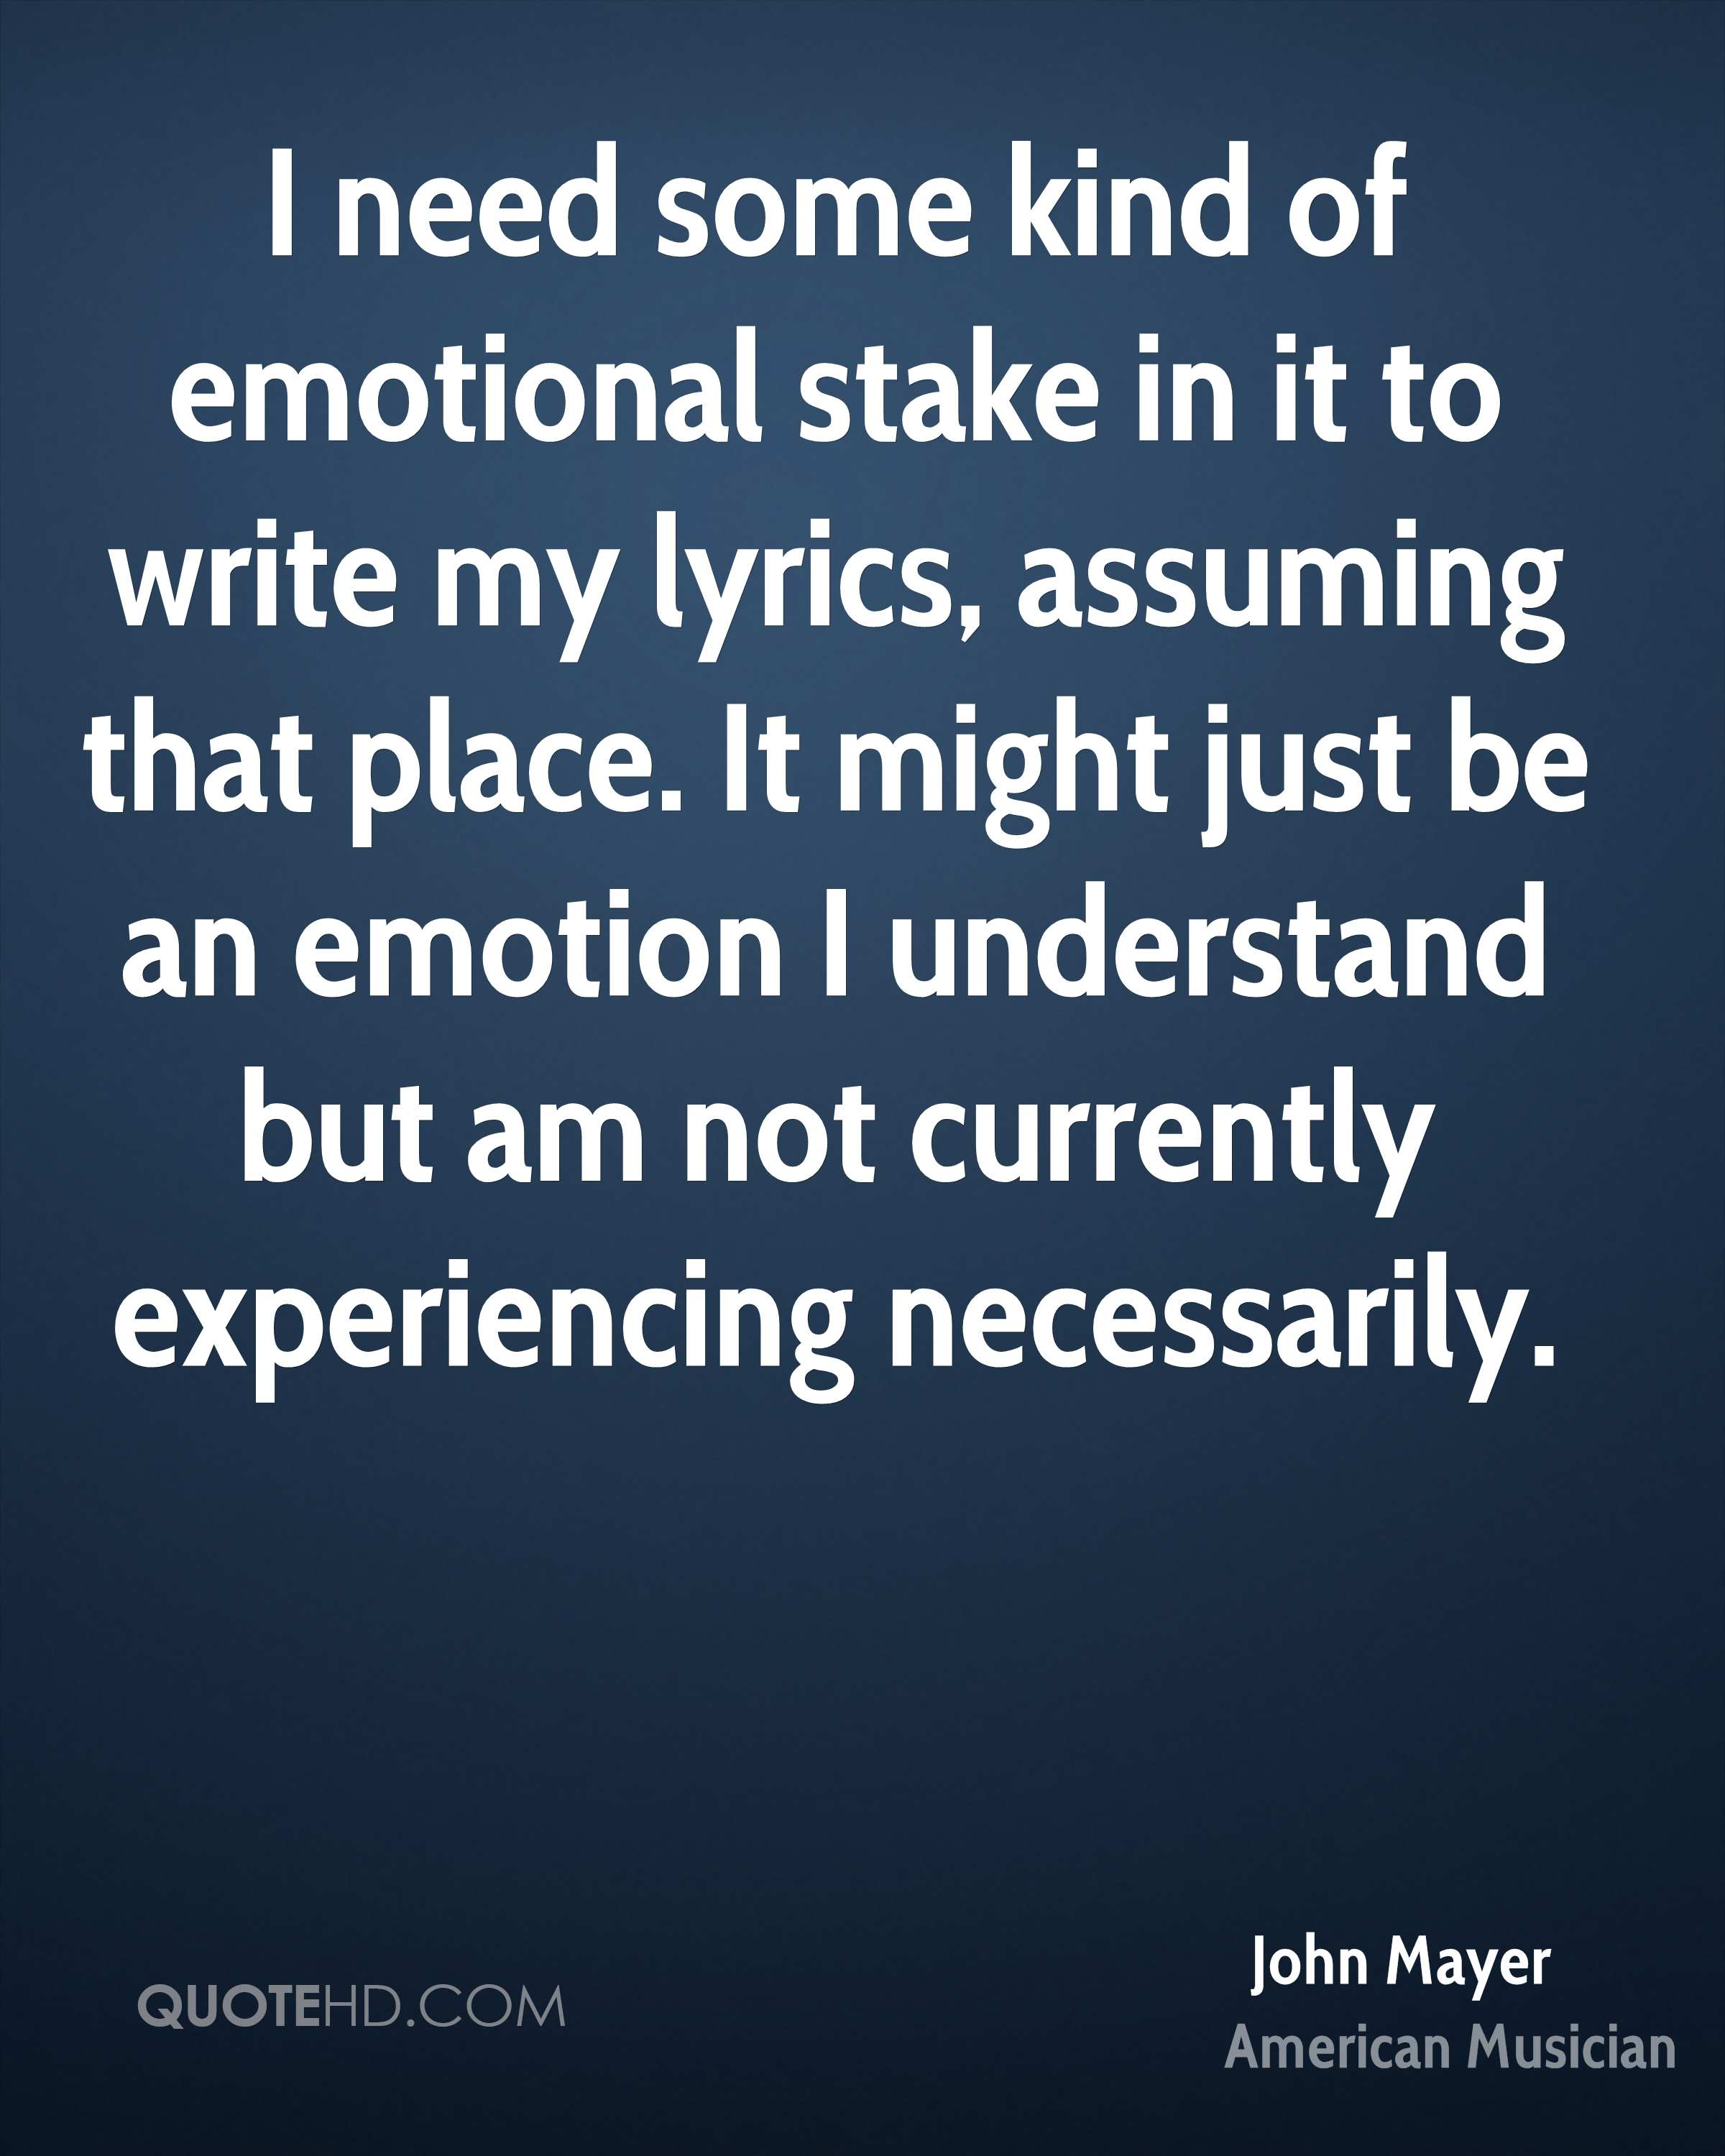 I need some kind of emotional stake in it to write my lyrics, assuming that place. It might just be an emotion I understand but am not currently experiencing necessarily.